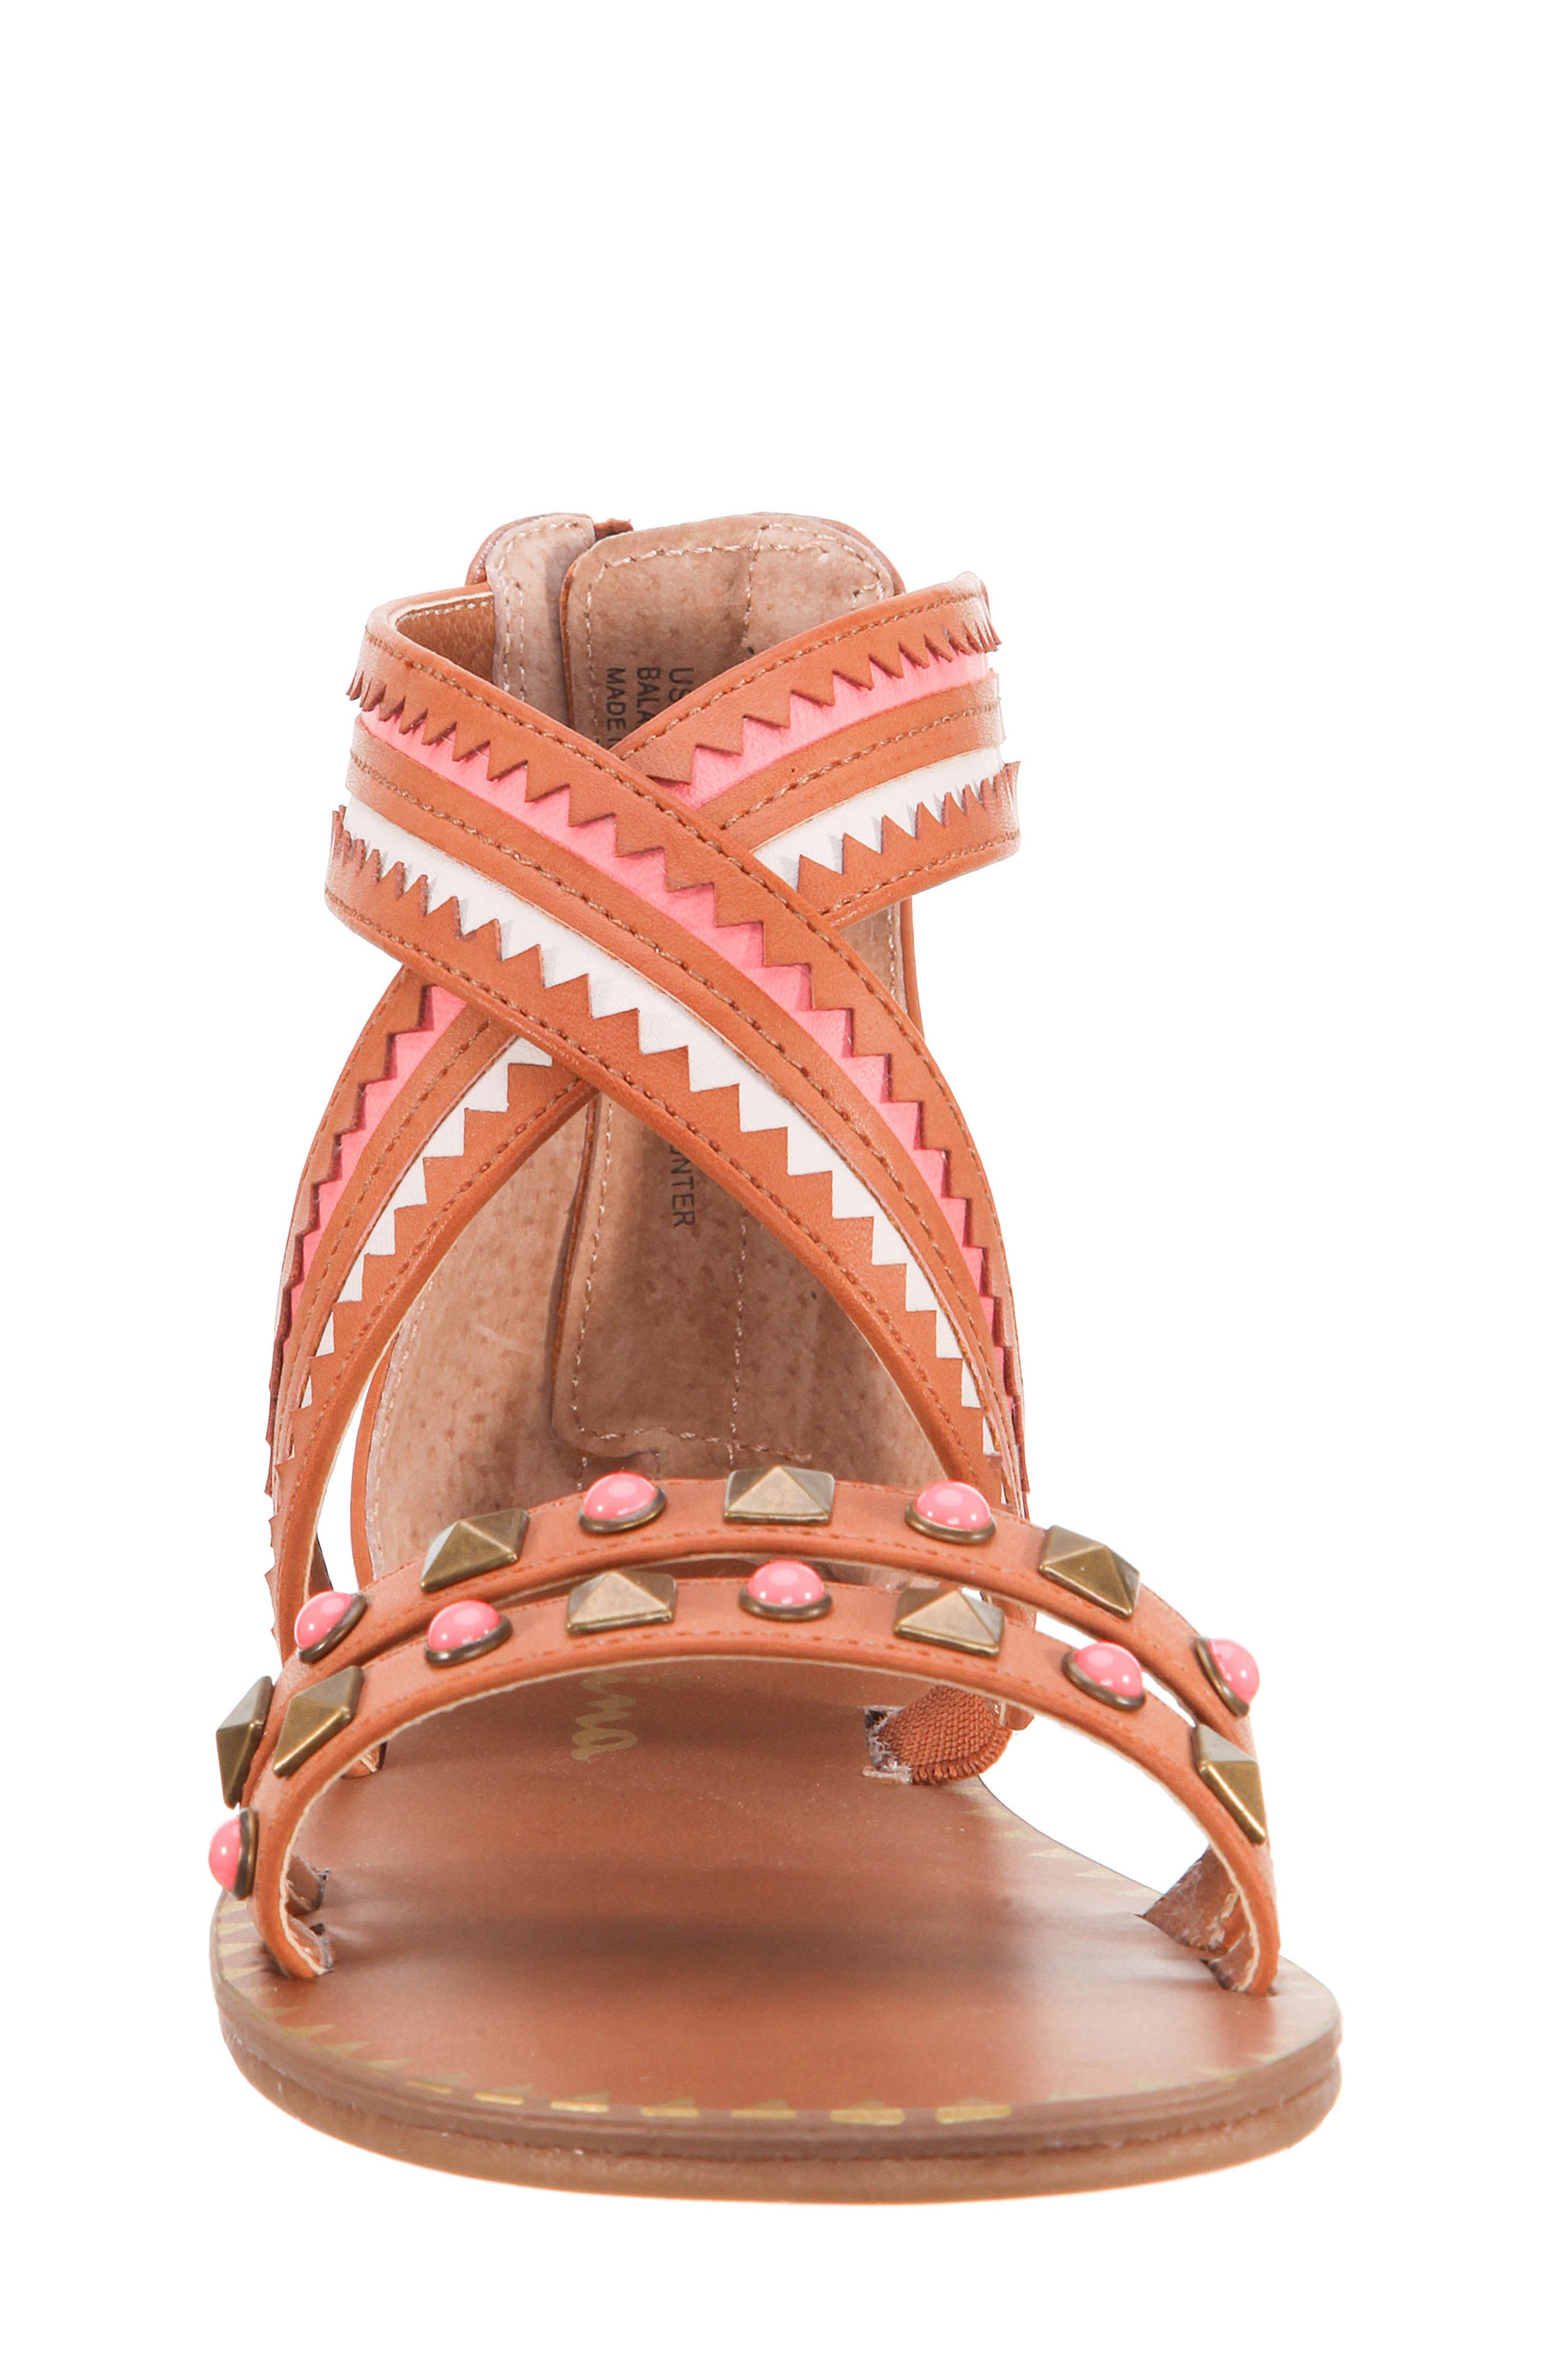 Phelisha Embellished Gladiator Sandal,                             Alternate thumbnail 4, color,                             Tan Burnished